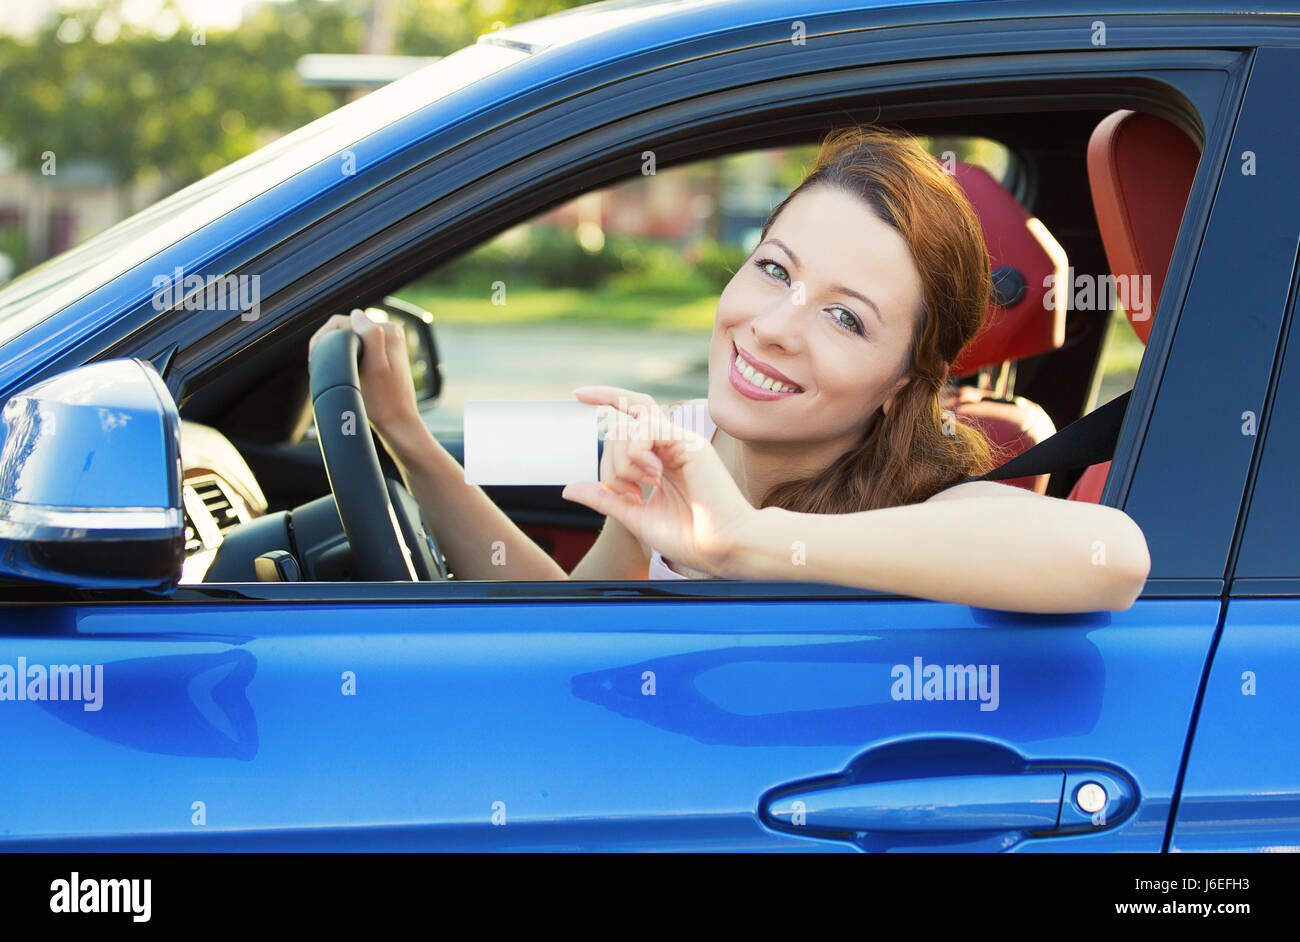 Young woman in new car showing blank drivers license or sign out, through side car window. Happy lovely female model - Stock Image